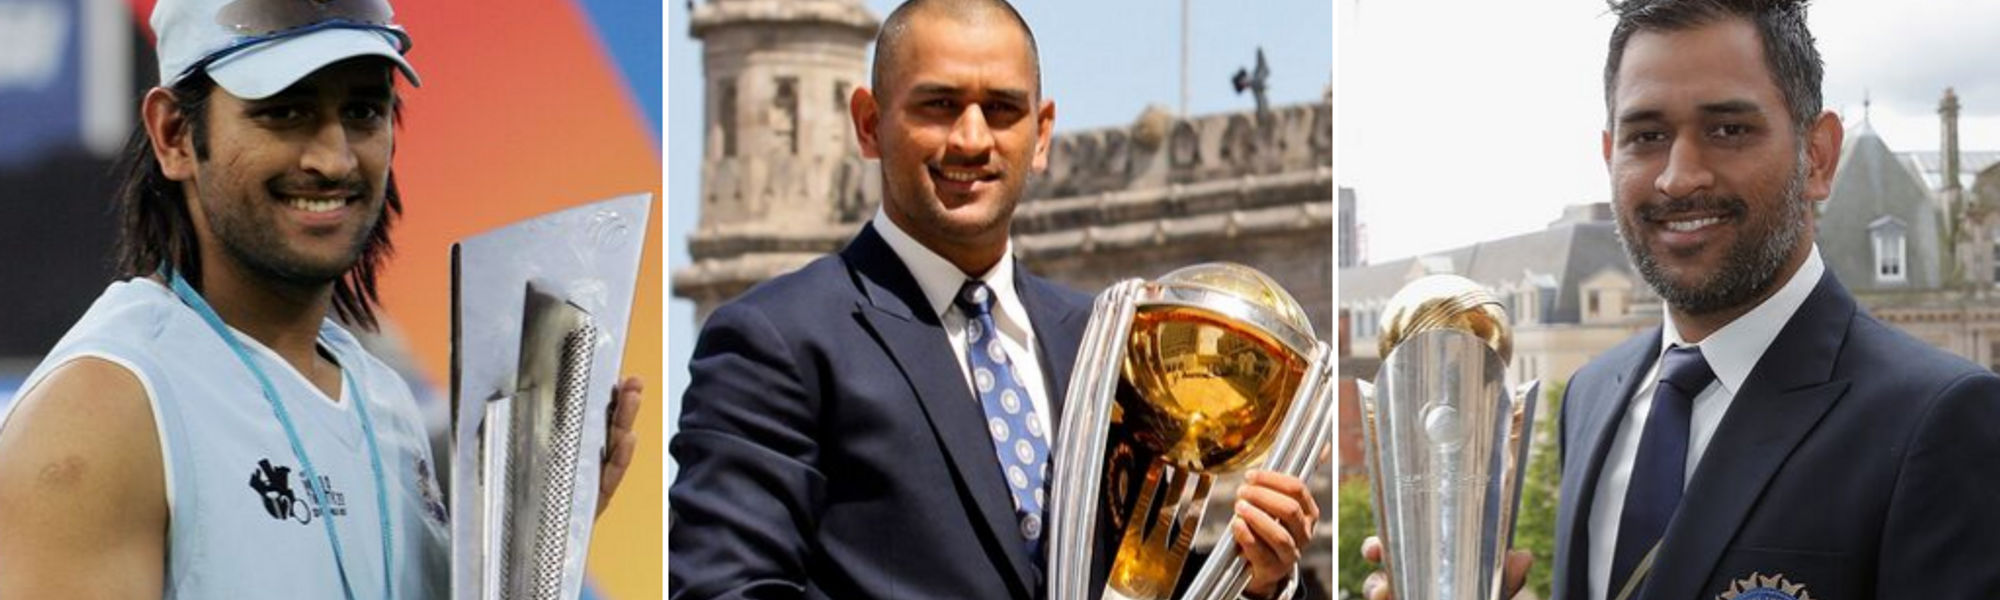 Dhoni ICC trophy collage